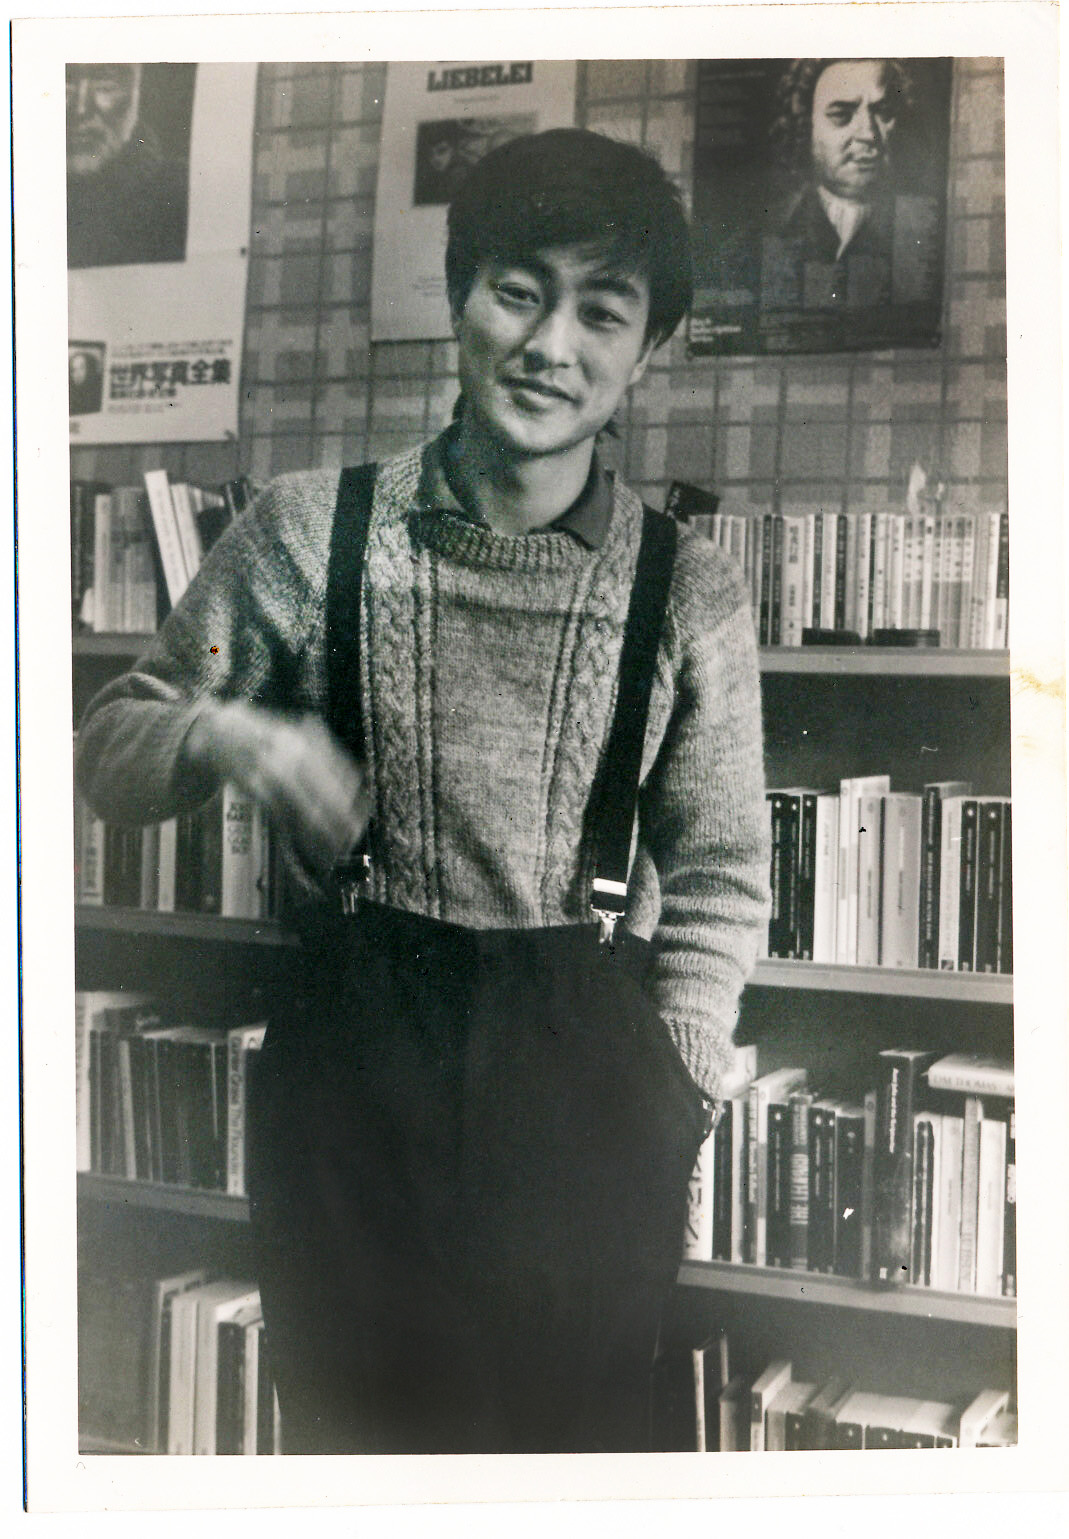 Ichiro Kawachi as a student in Wellington in the early 1980s